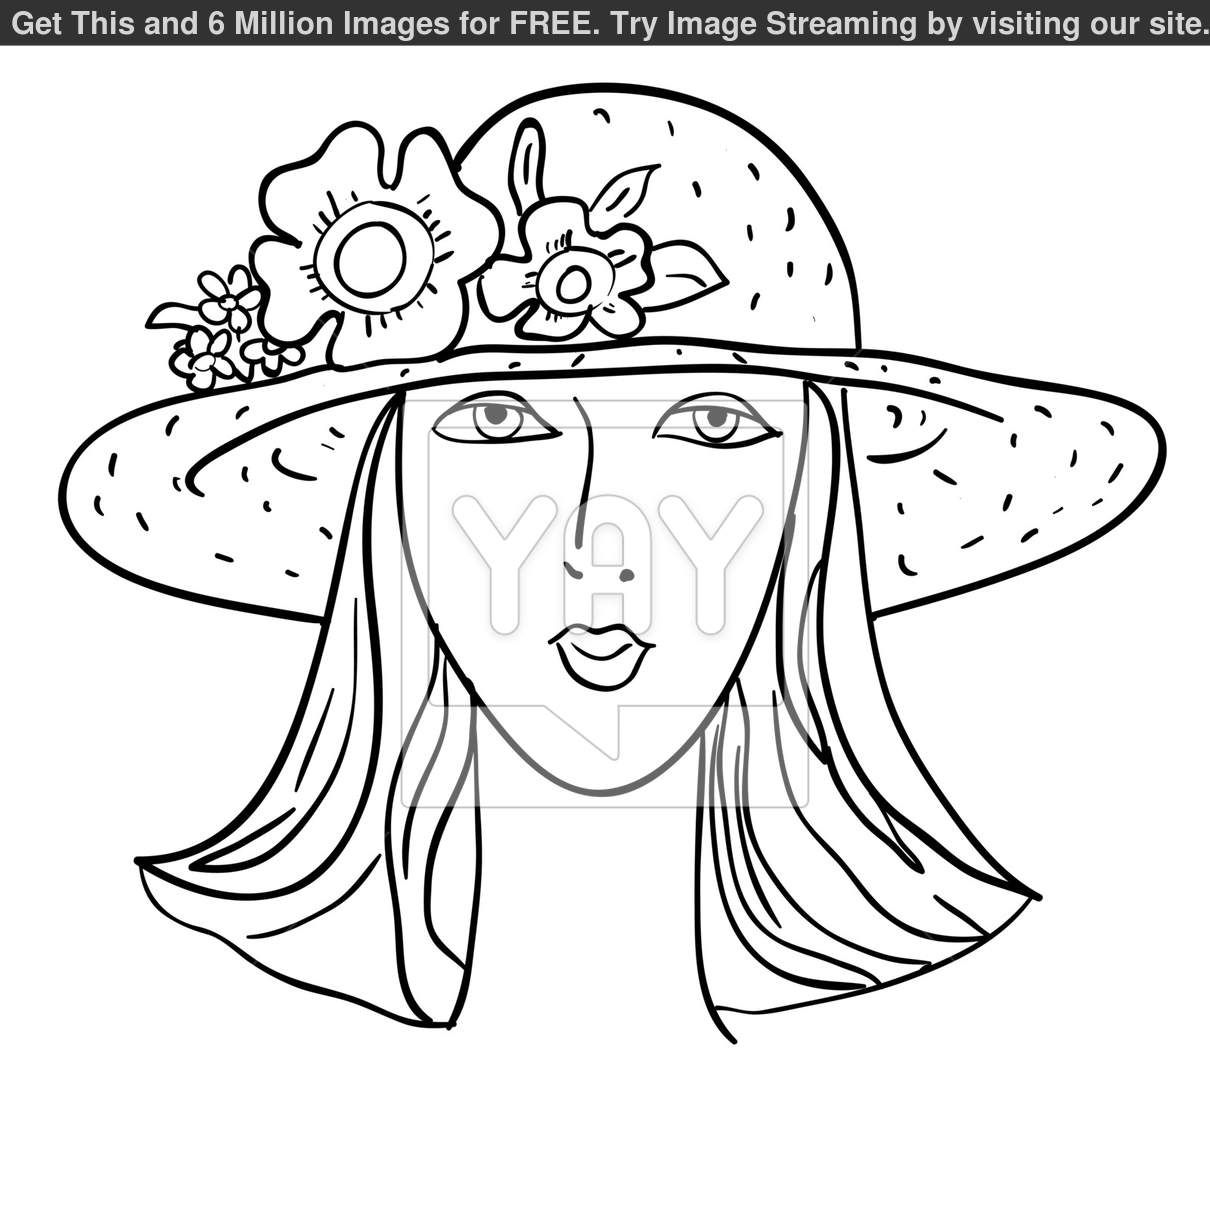 hand-drawn-fashion-model--vector-illustration--woman-s-face-934ff0.jpg (1210×1210)